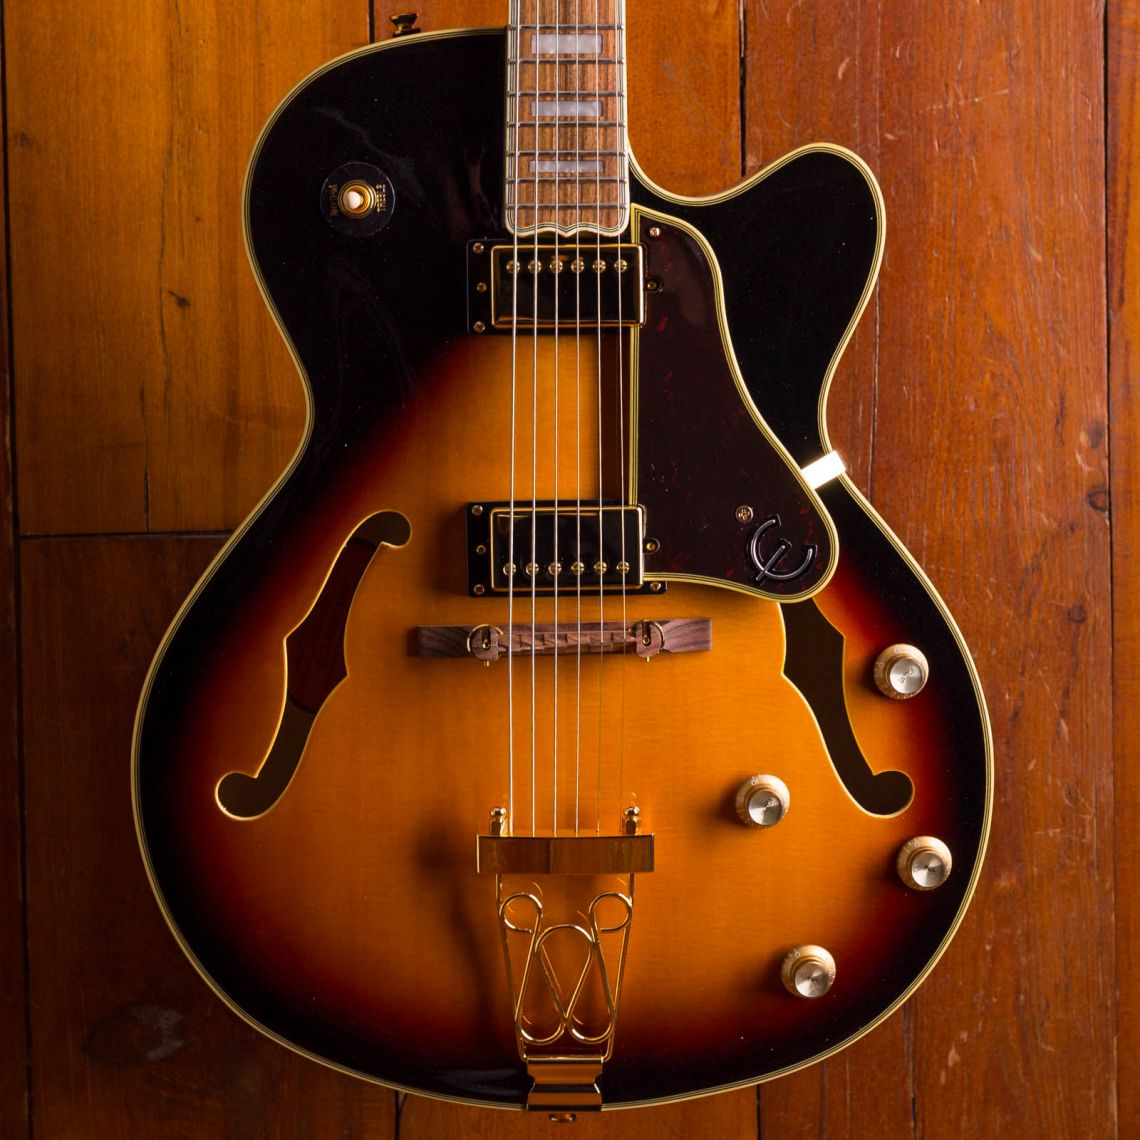 Epiphone Joe Pass Emperor II PRO VS